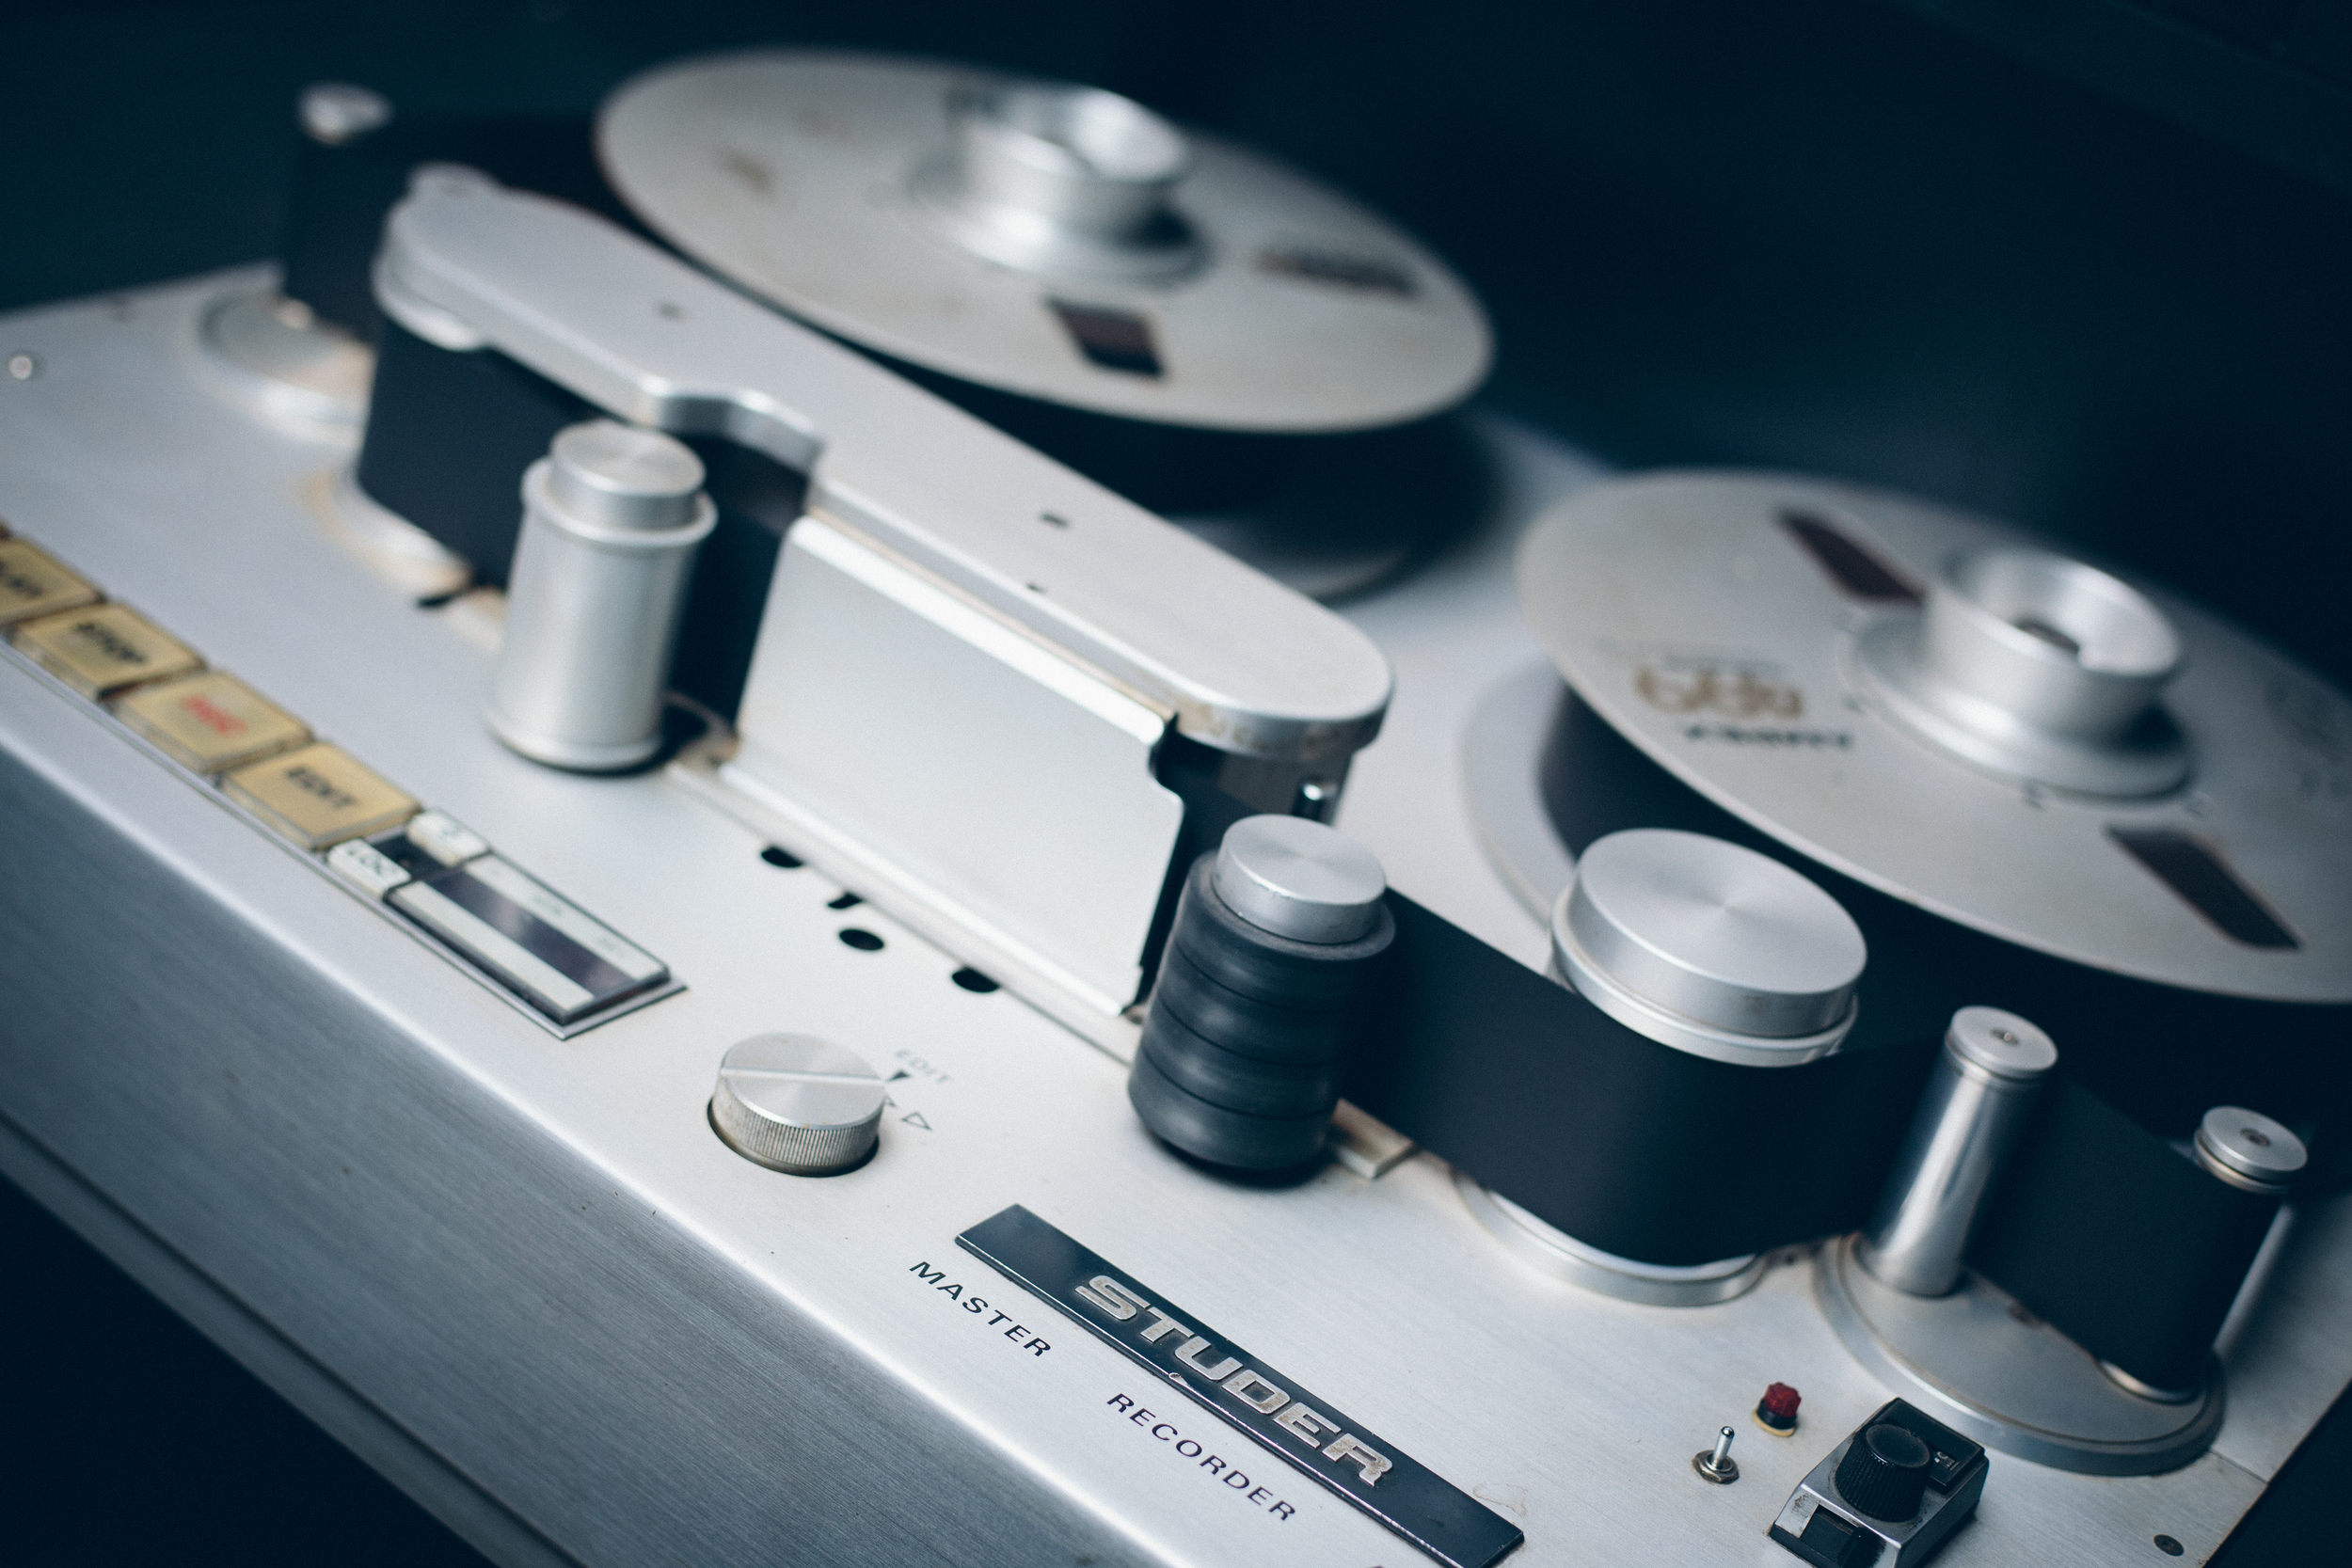 We incorporate highly coveted analog recording gear into our mastering workflows for rich, smooth sound.